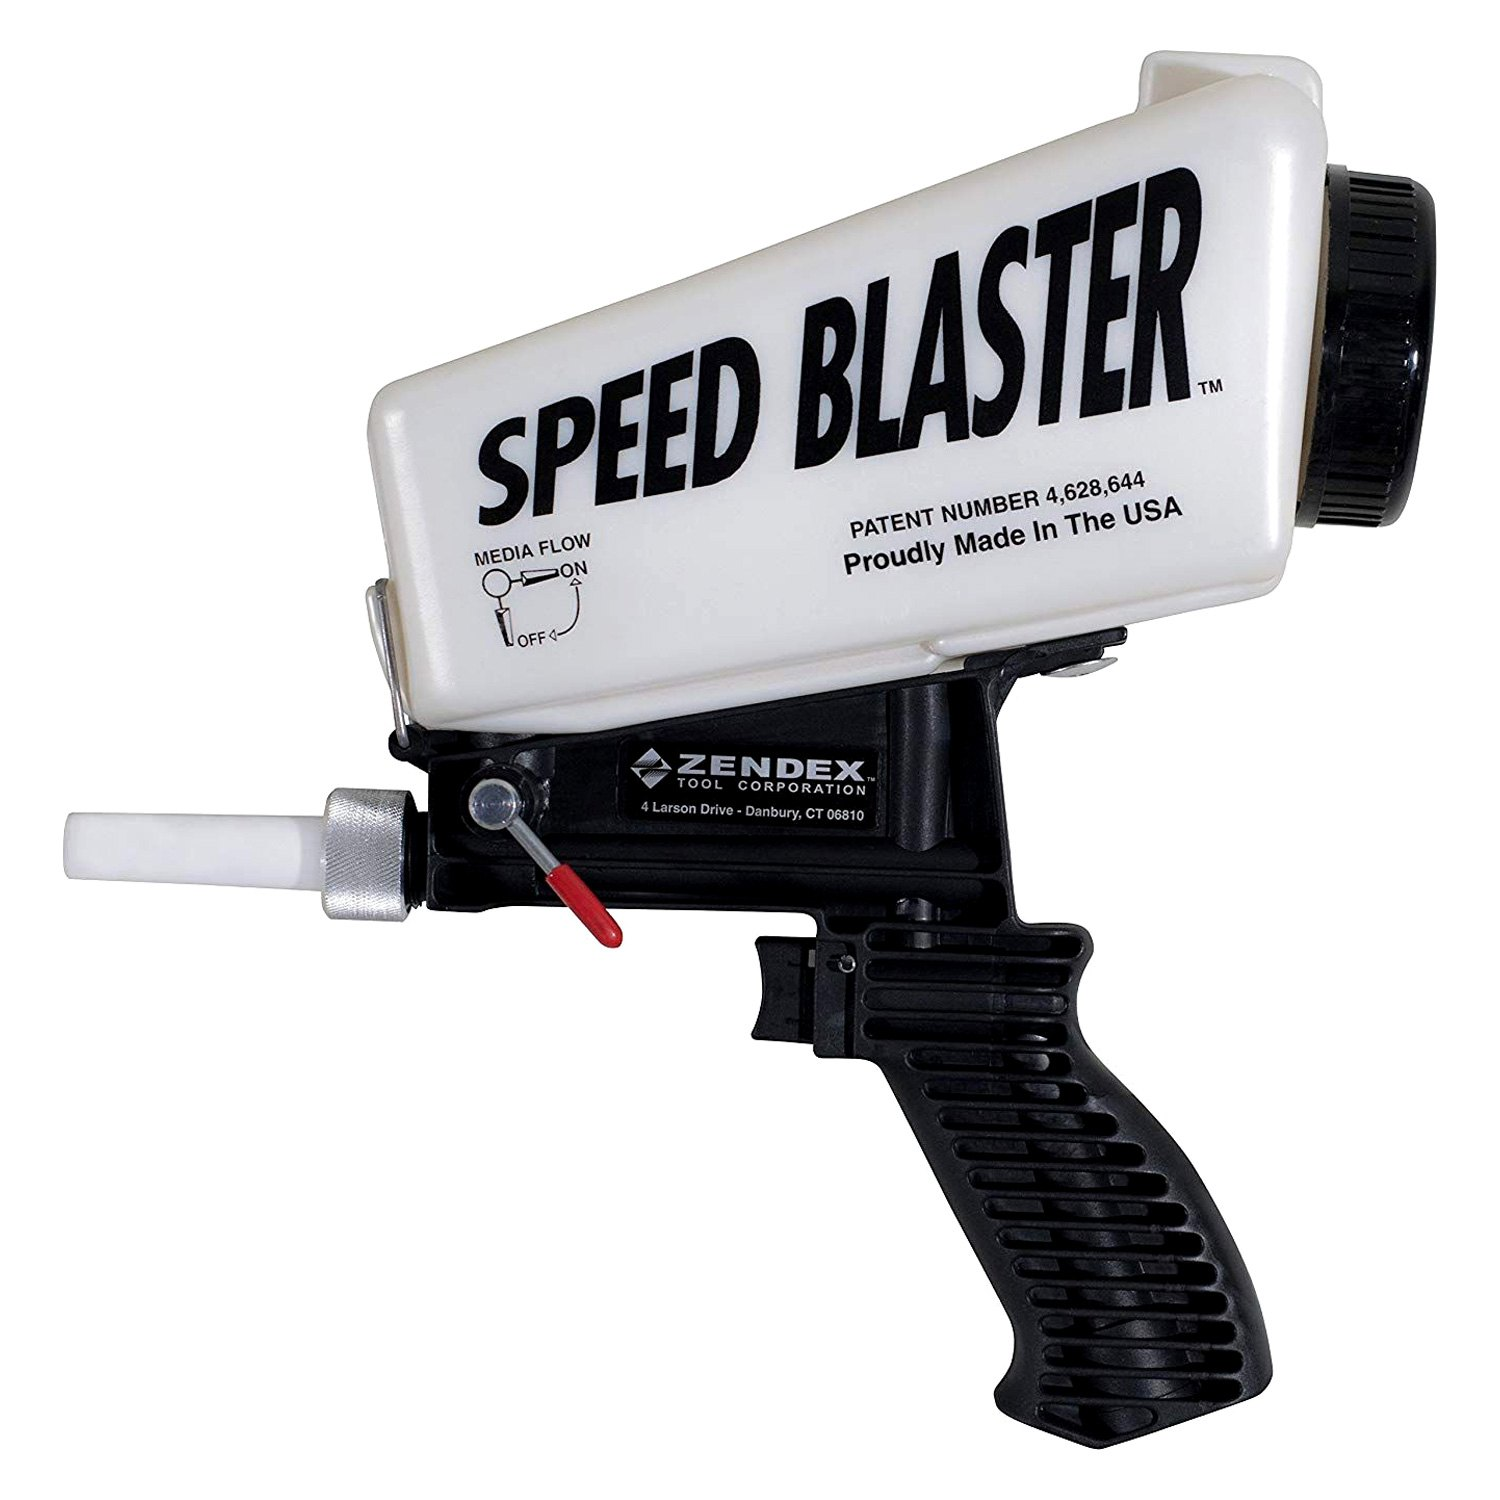 Zendex® 007 - SpeedBlaster™ Gravity Feed Media Blaster